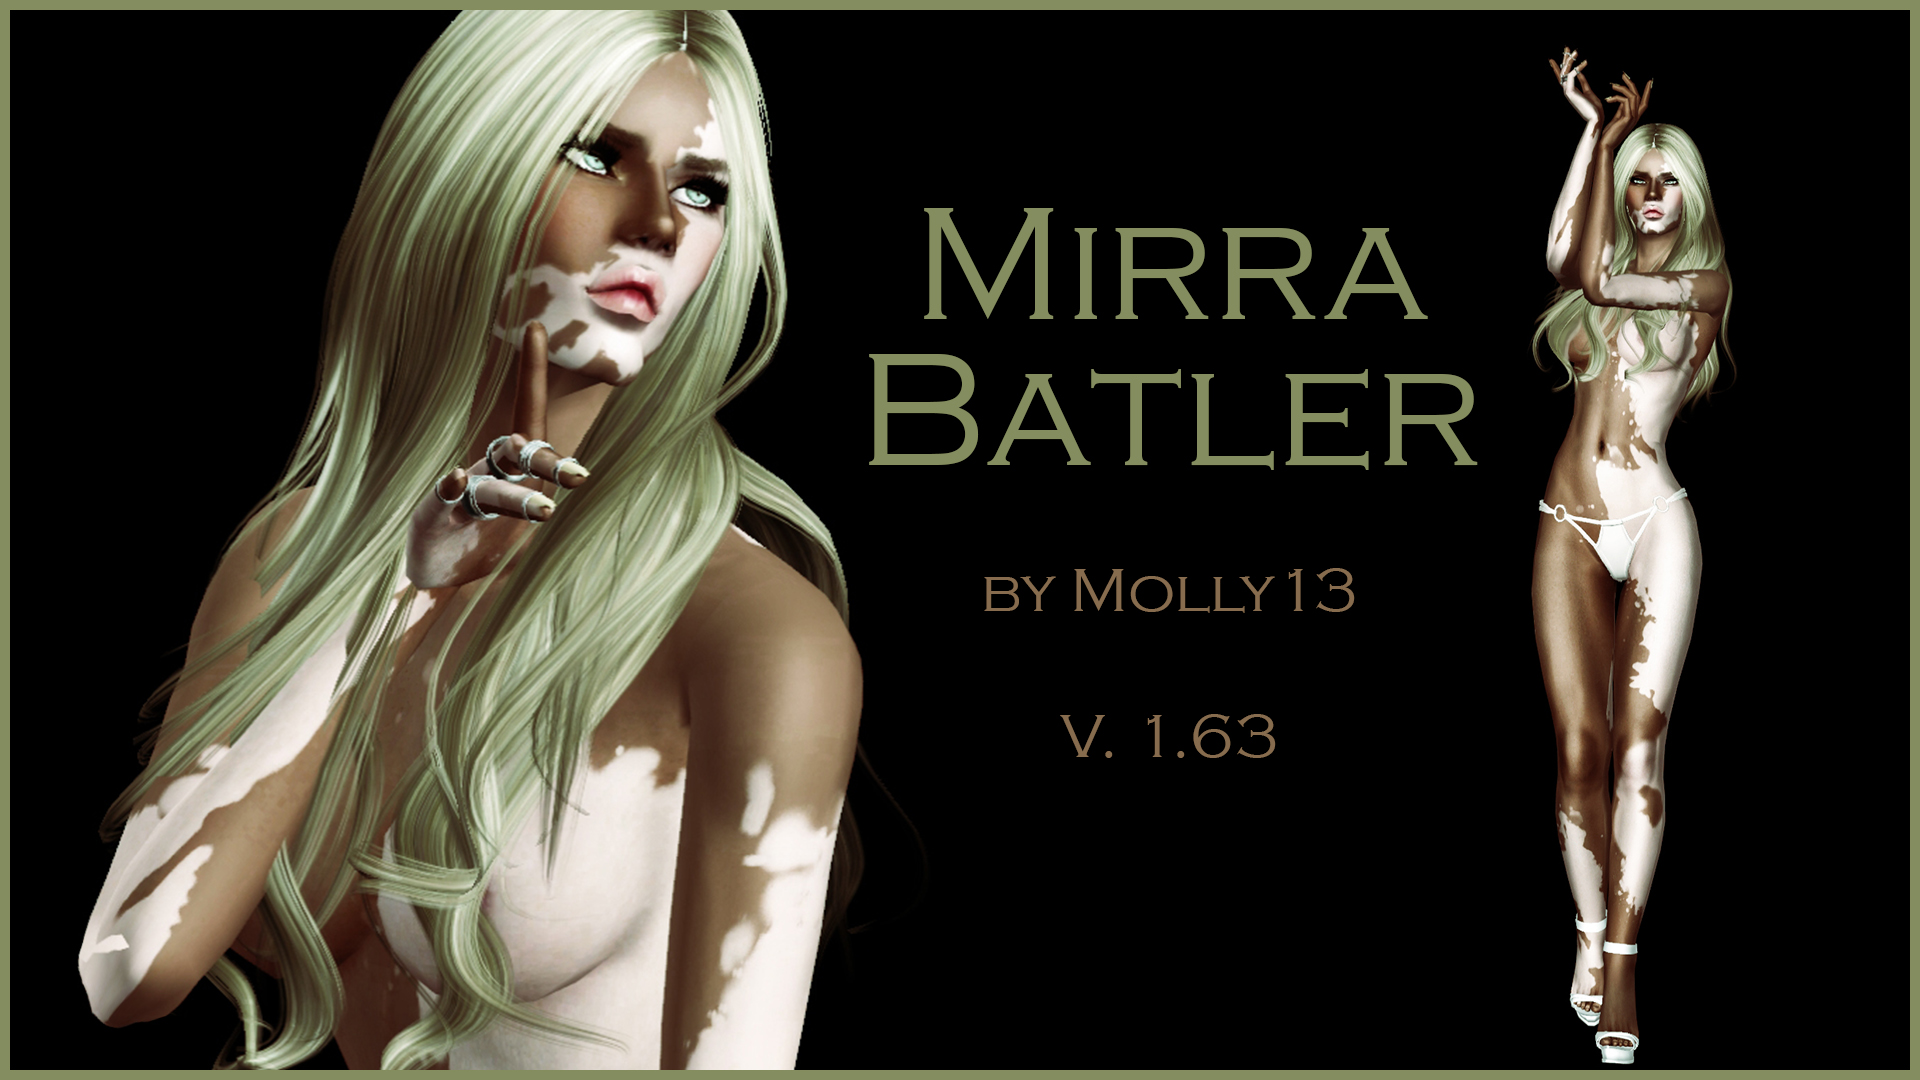 Mirra Batler by Molly13